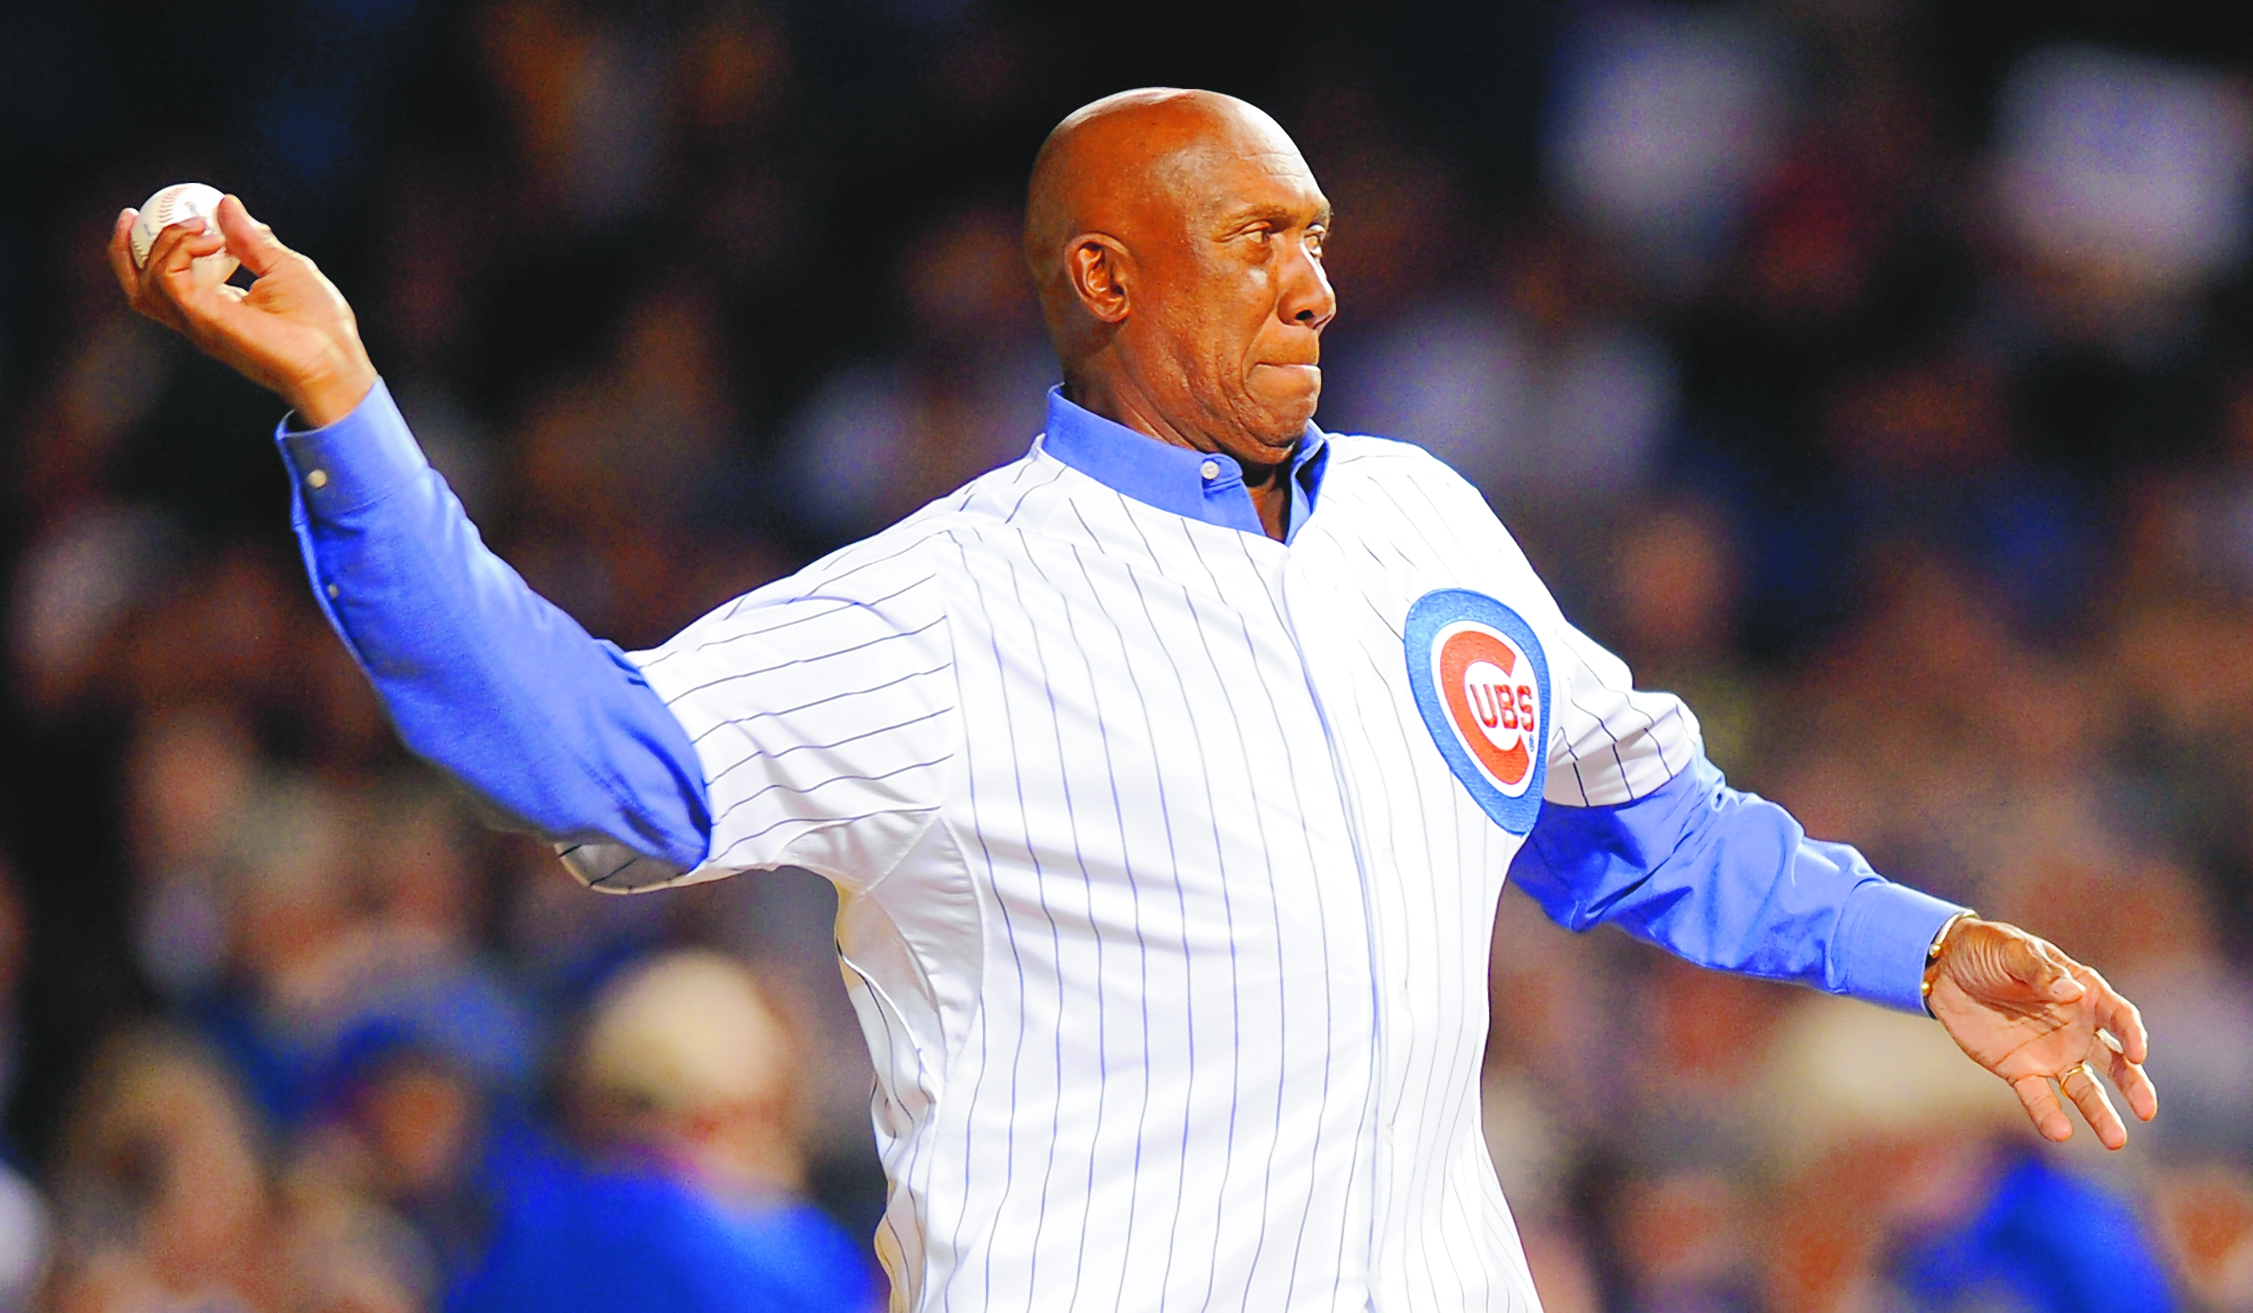 Fergie Jenkins shared his opinion on Sammy Sosa and the Cubs' relationship, the Astros' sign-stealing scandal and Pete Rose's lifetime ban in this week's Cha Room.